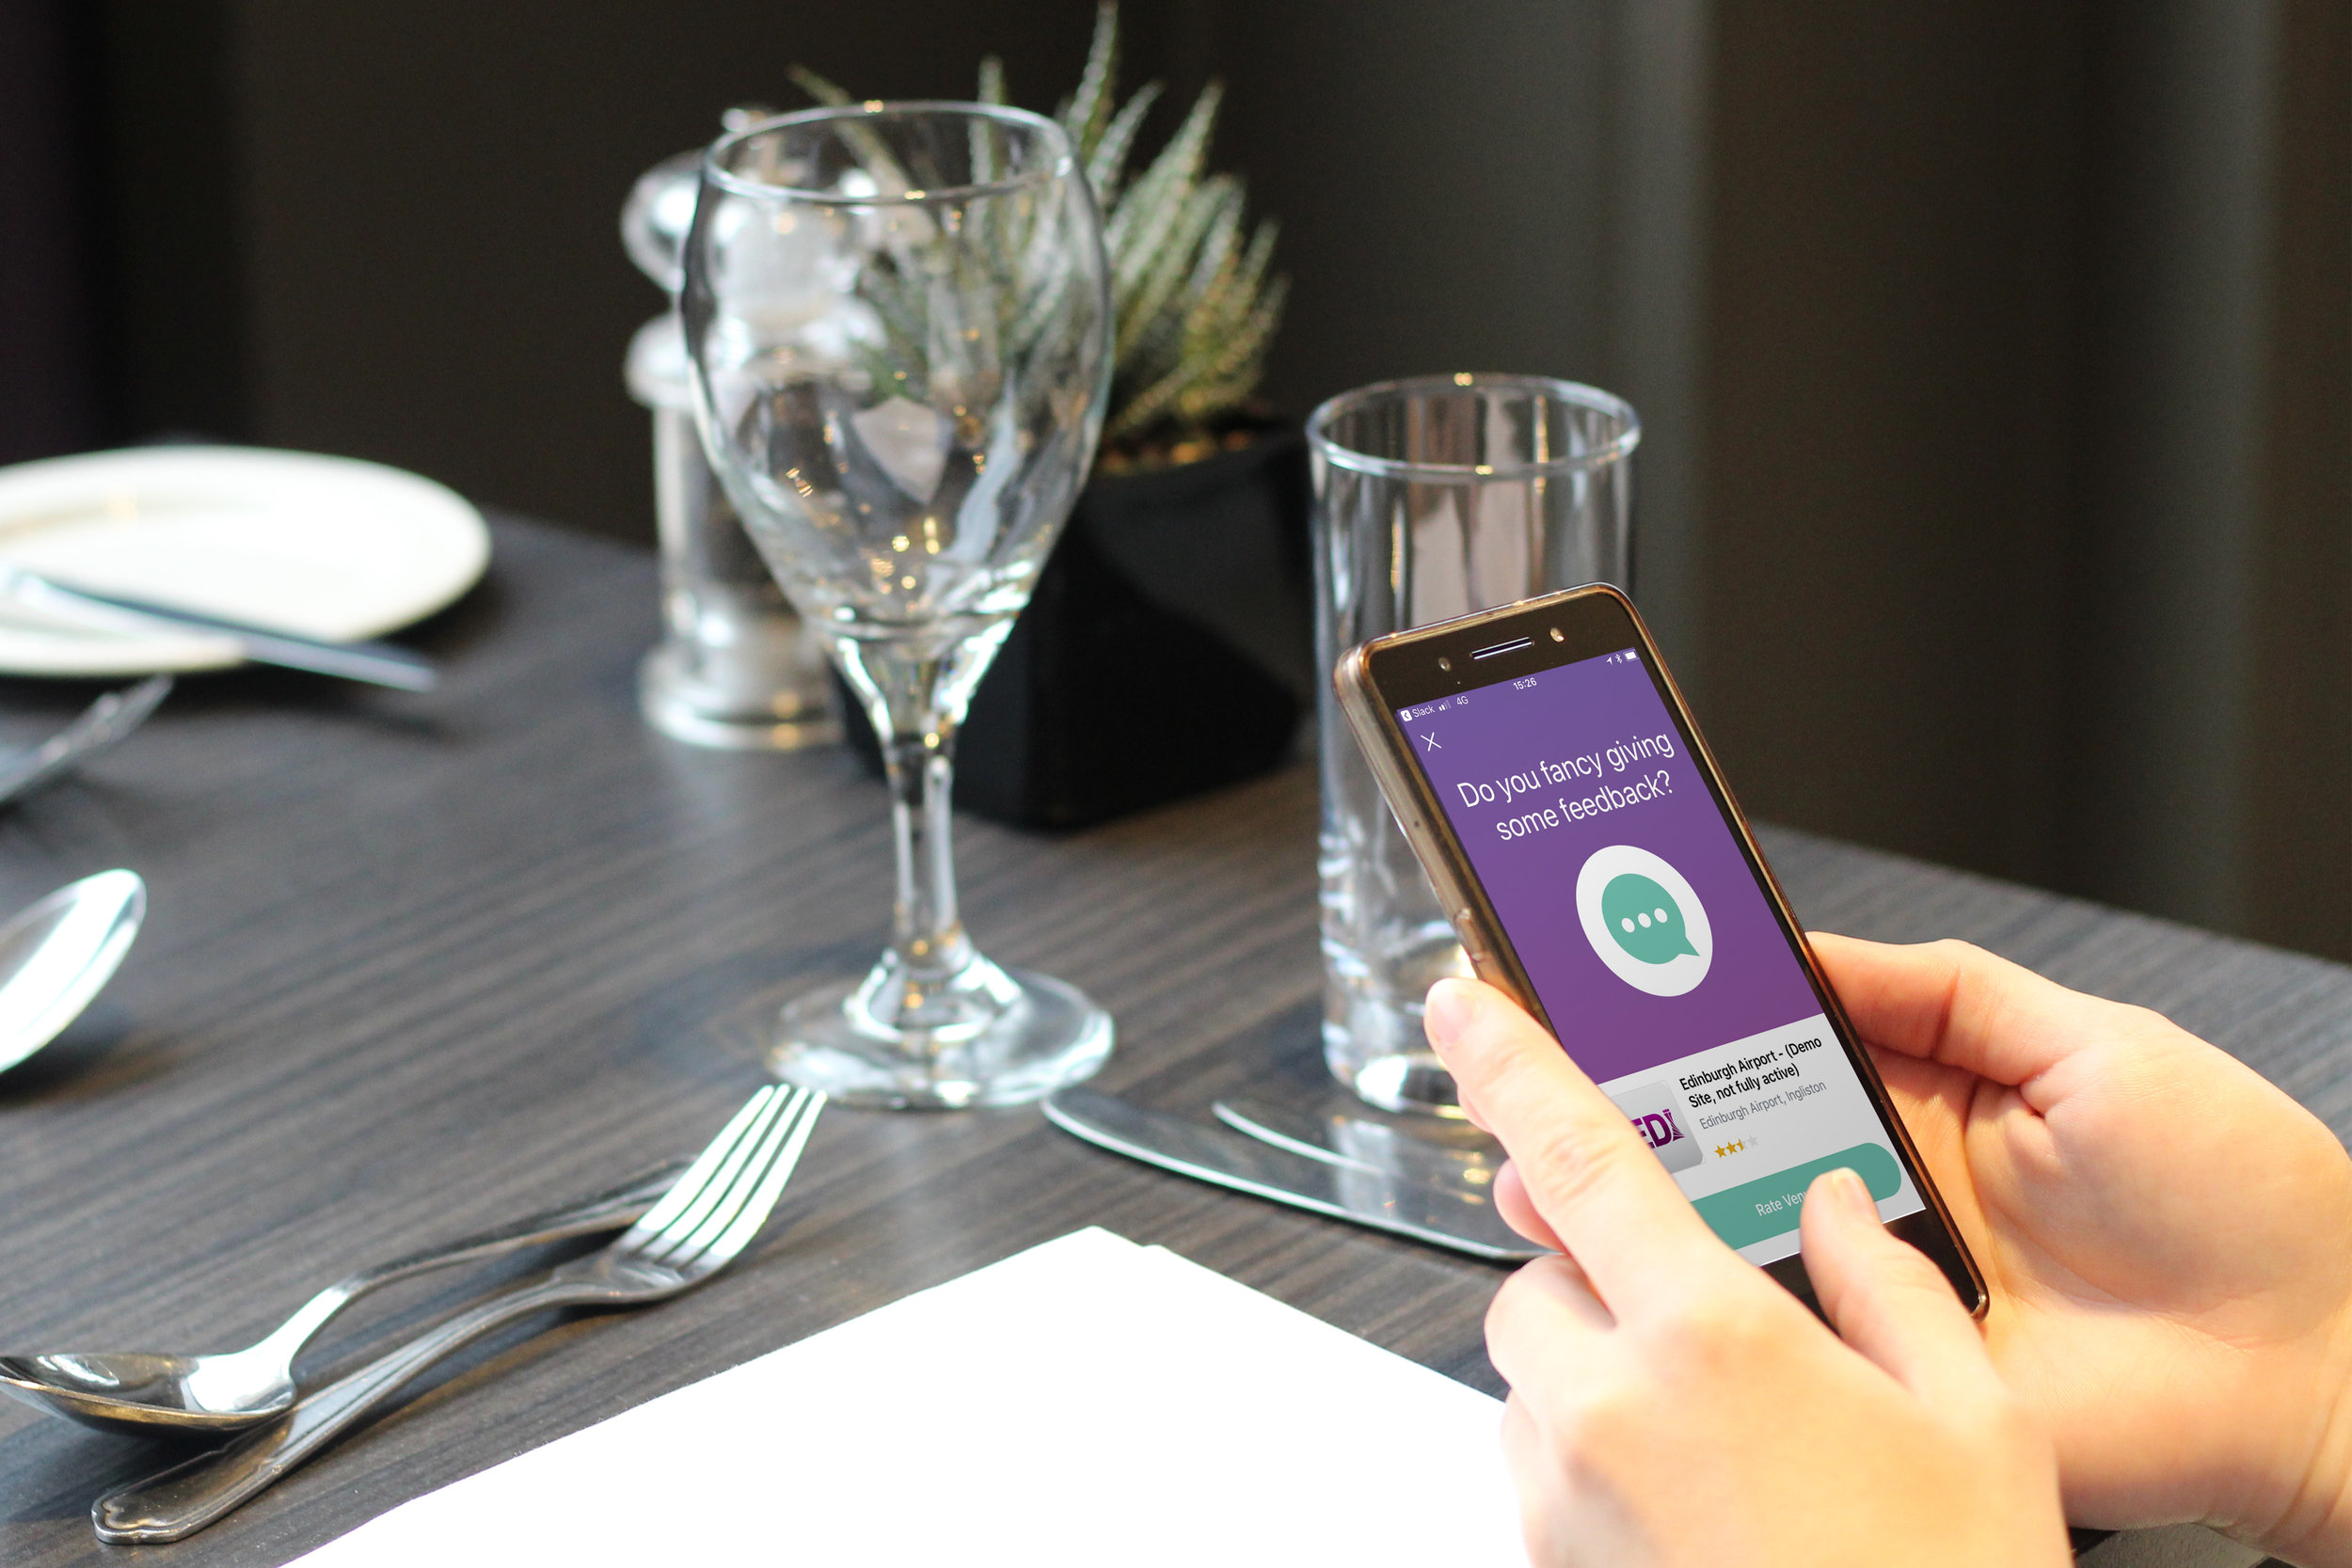 Sabrina sitting at restaurant table leaving feedback for a Welcome venue in the app.